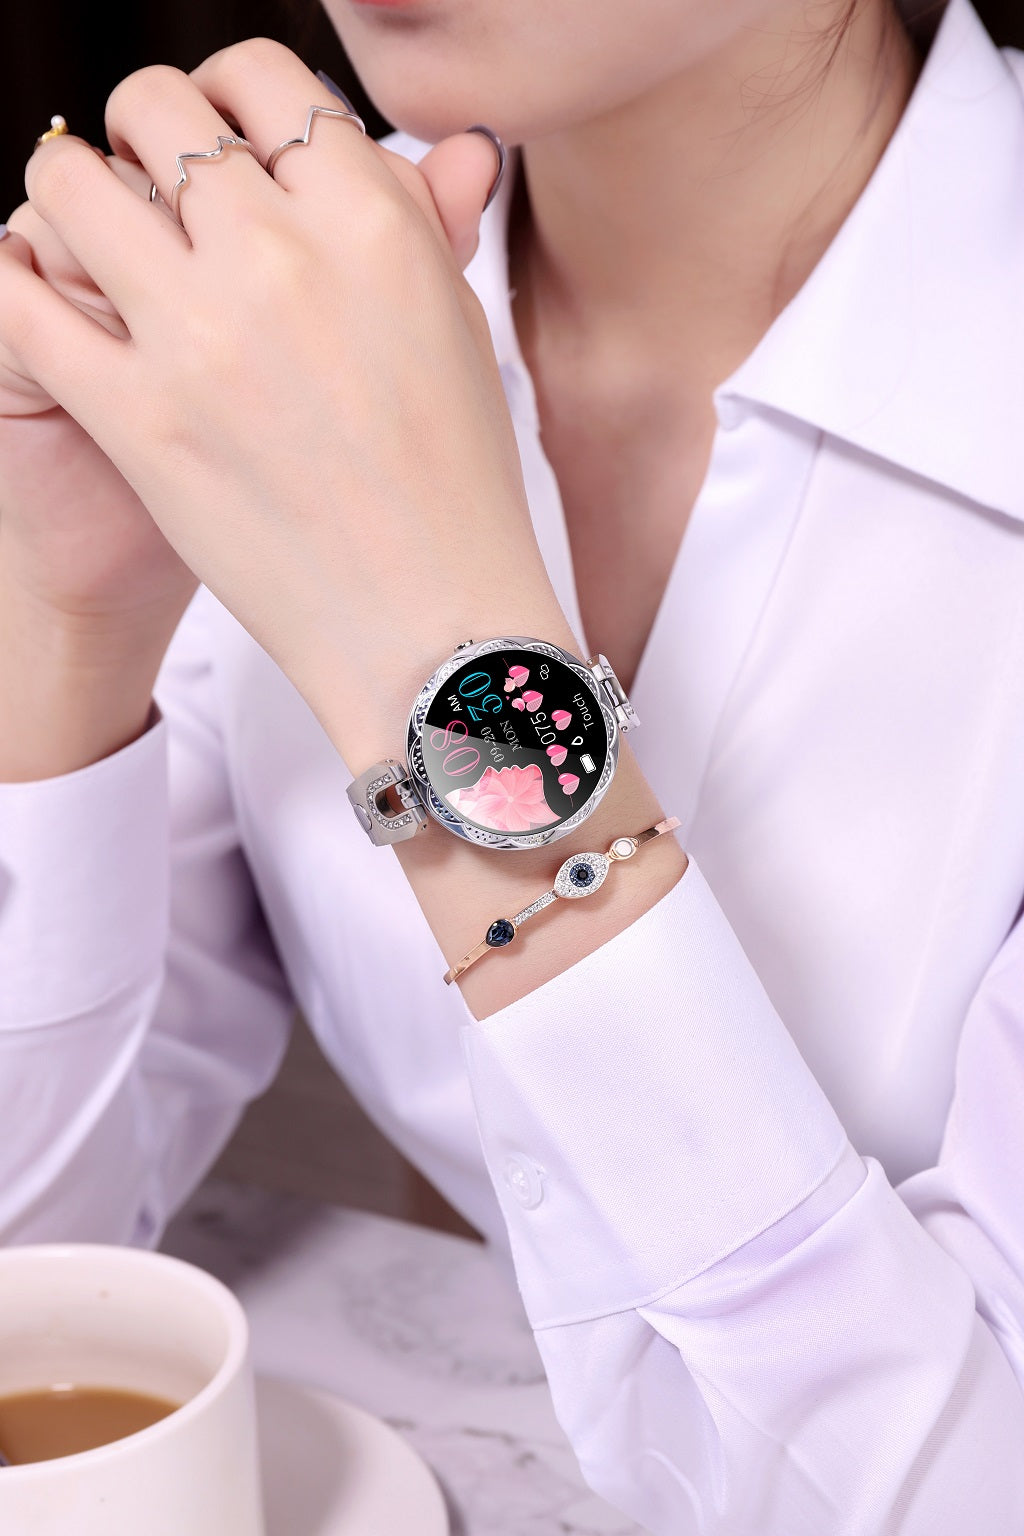 AK15 Smart Health Bracelet Watch Blood Pressure Heart rate Measurement Physiological Monitoring For Women